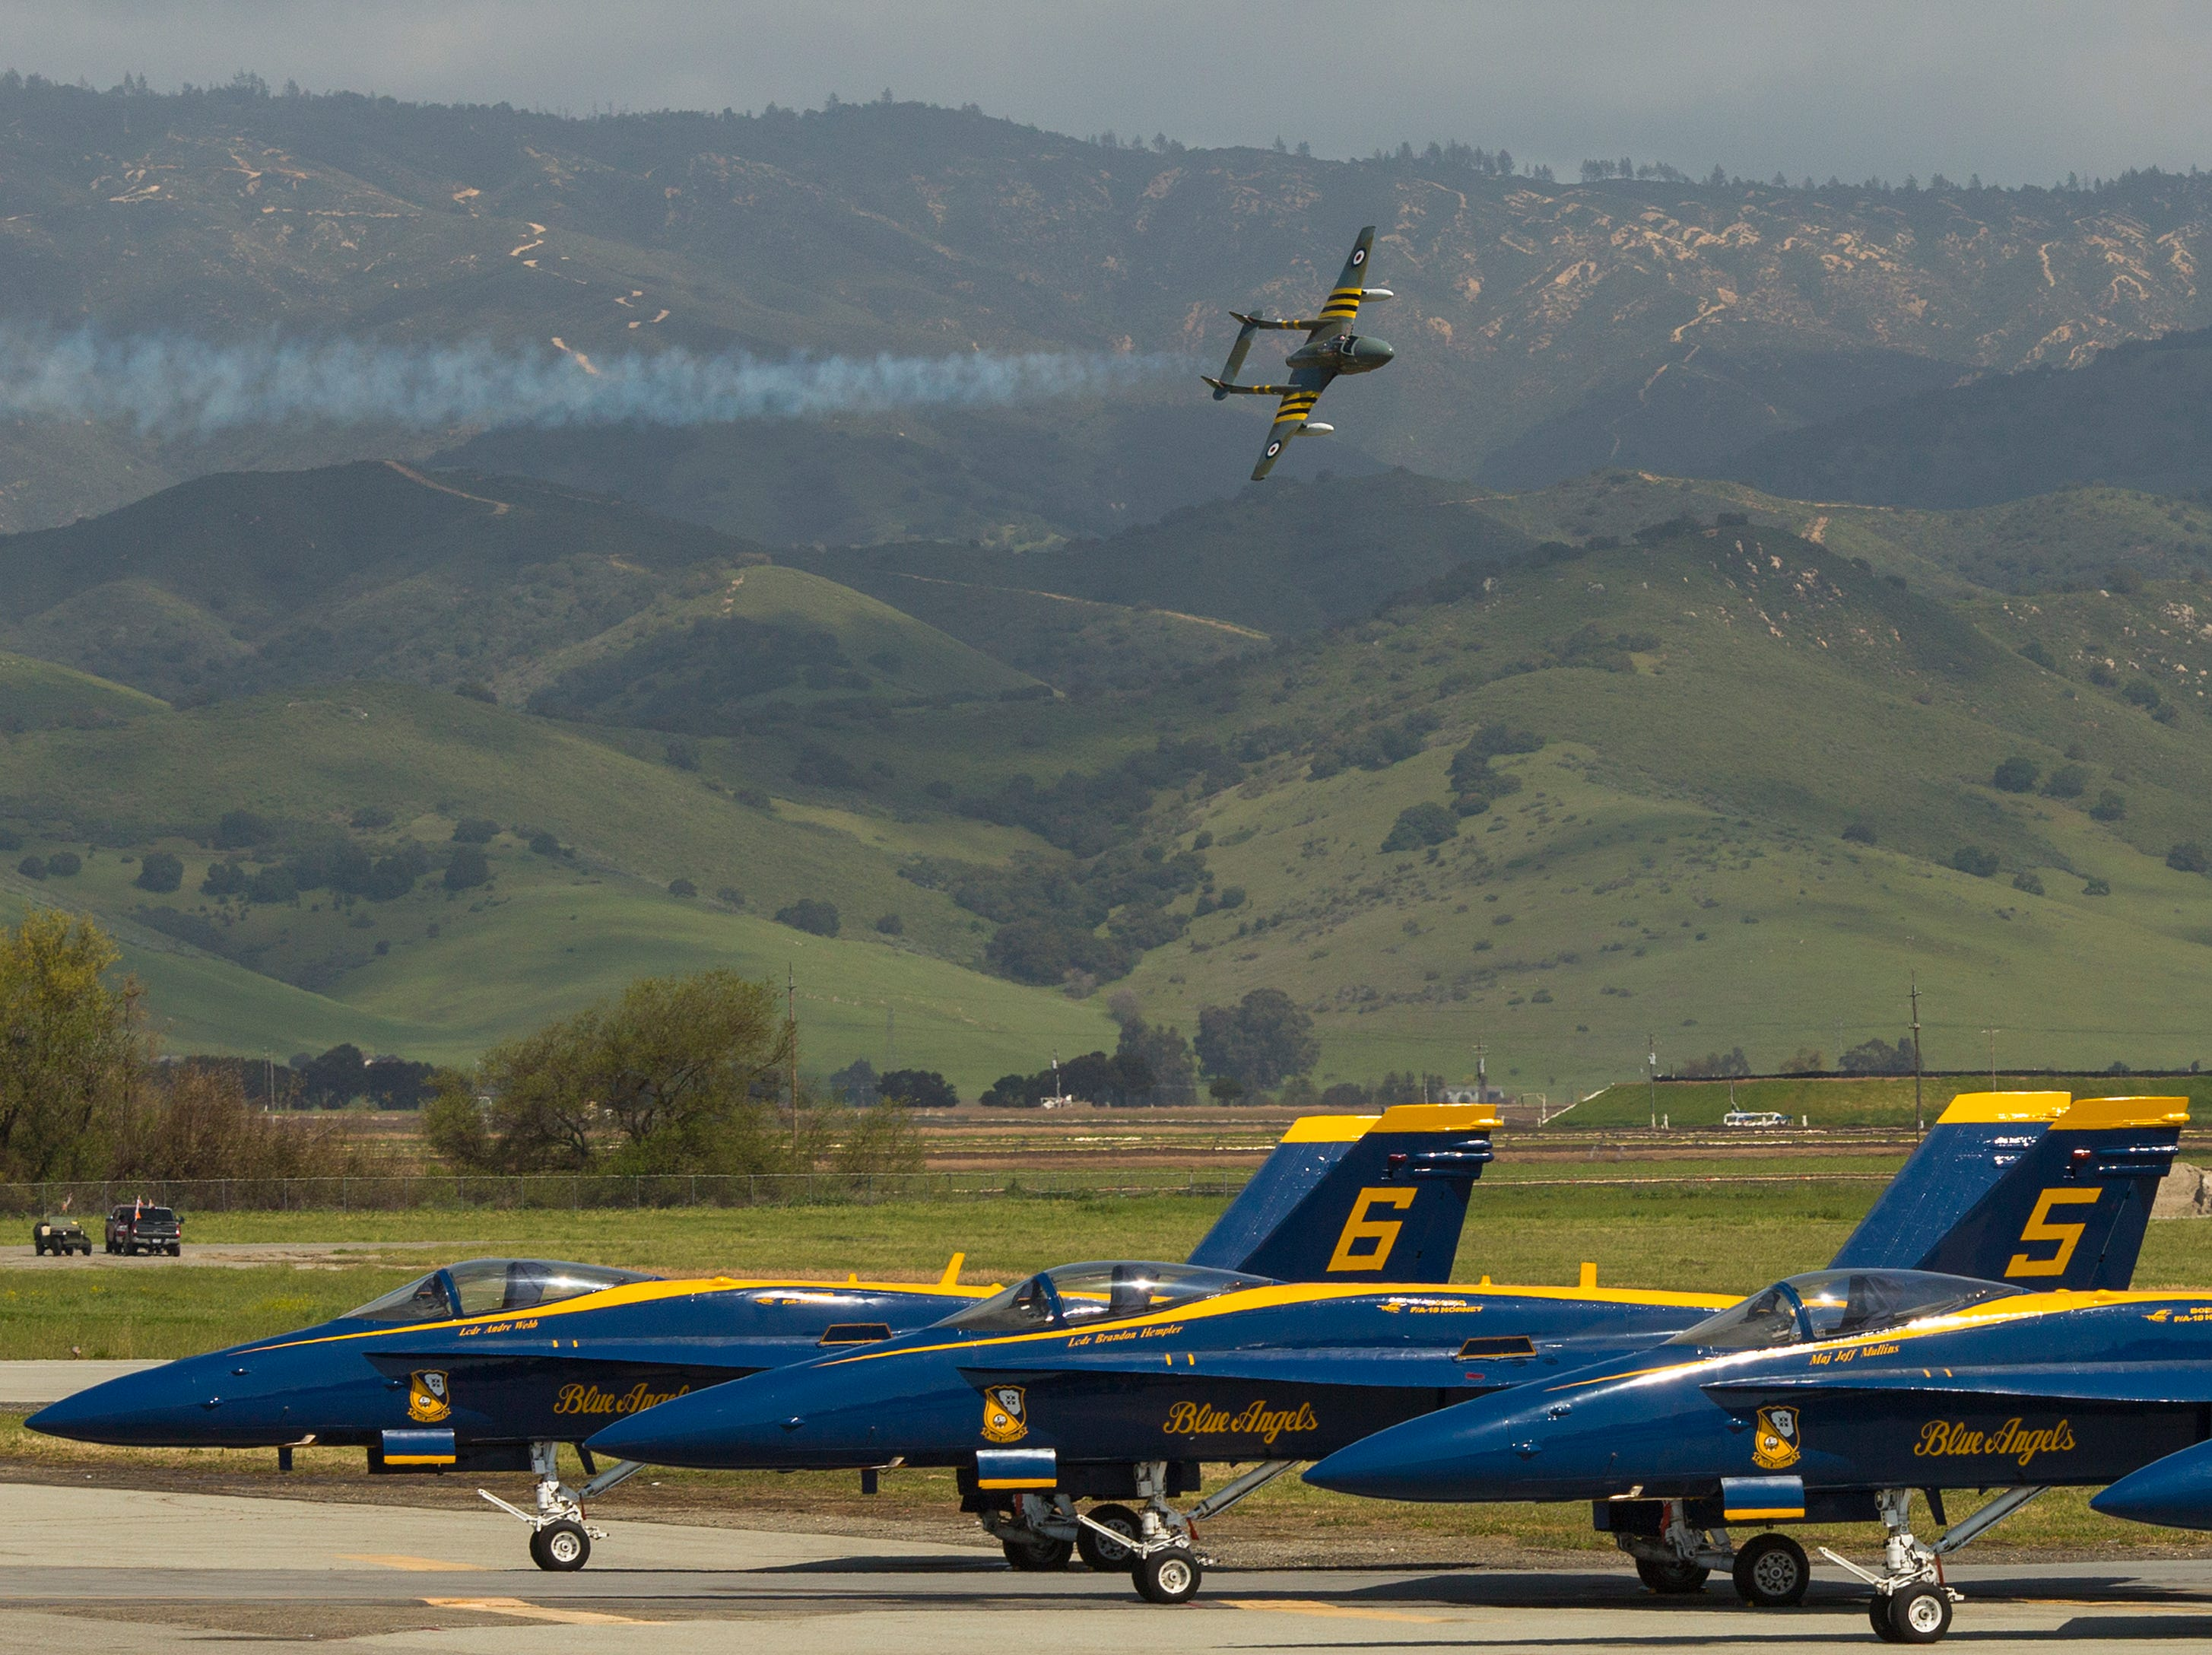 Jerry Conley flies his Vampire Jet above a row of parked Blue Angels F-18 jets during the California International Airshow Salinas at the Salinas Airport on March 23, 2019. (Photo by David Royal)